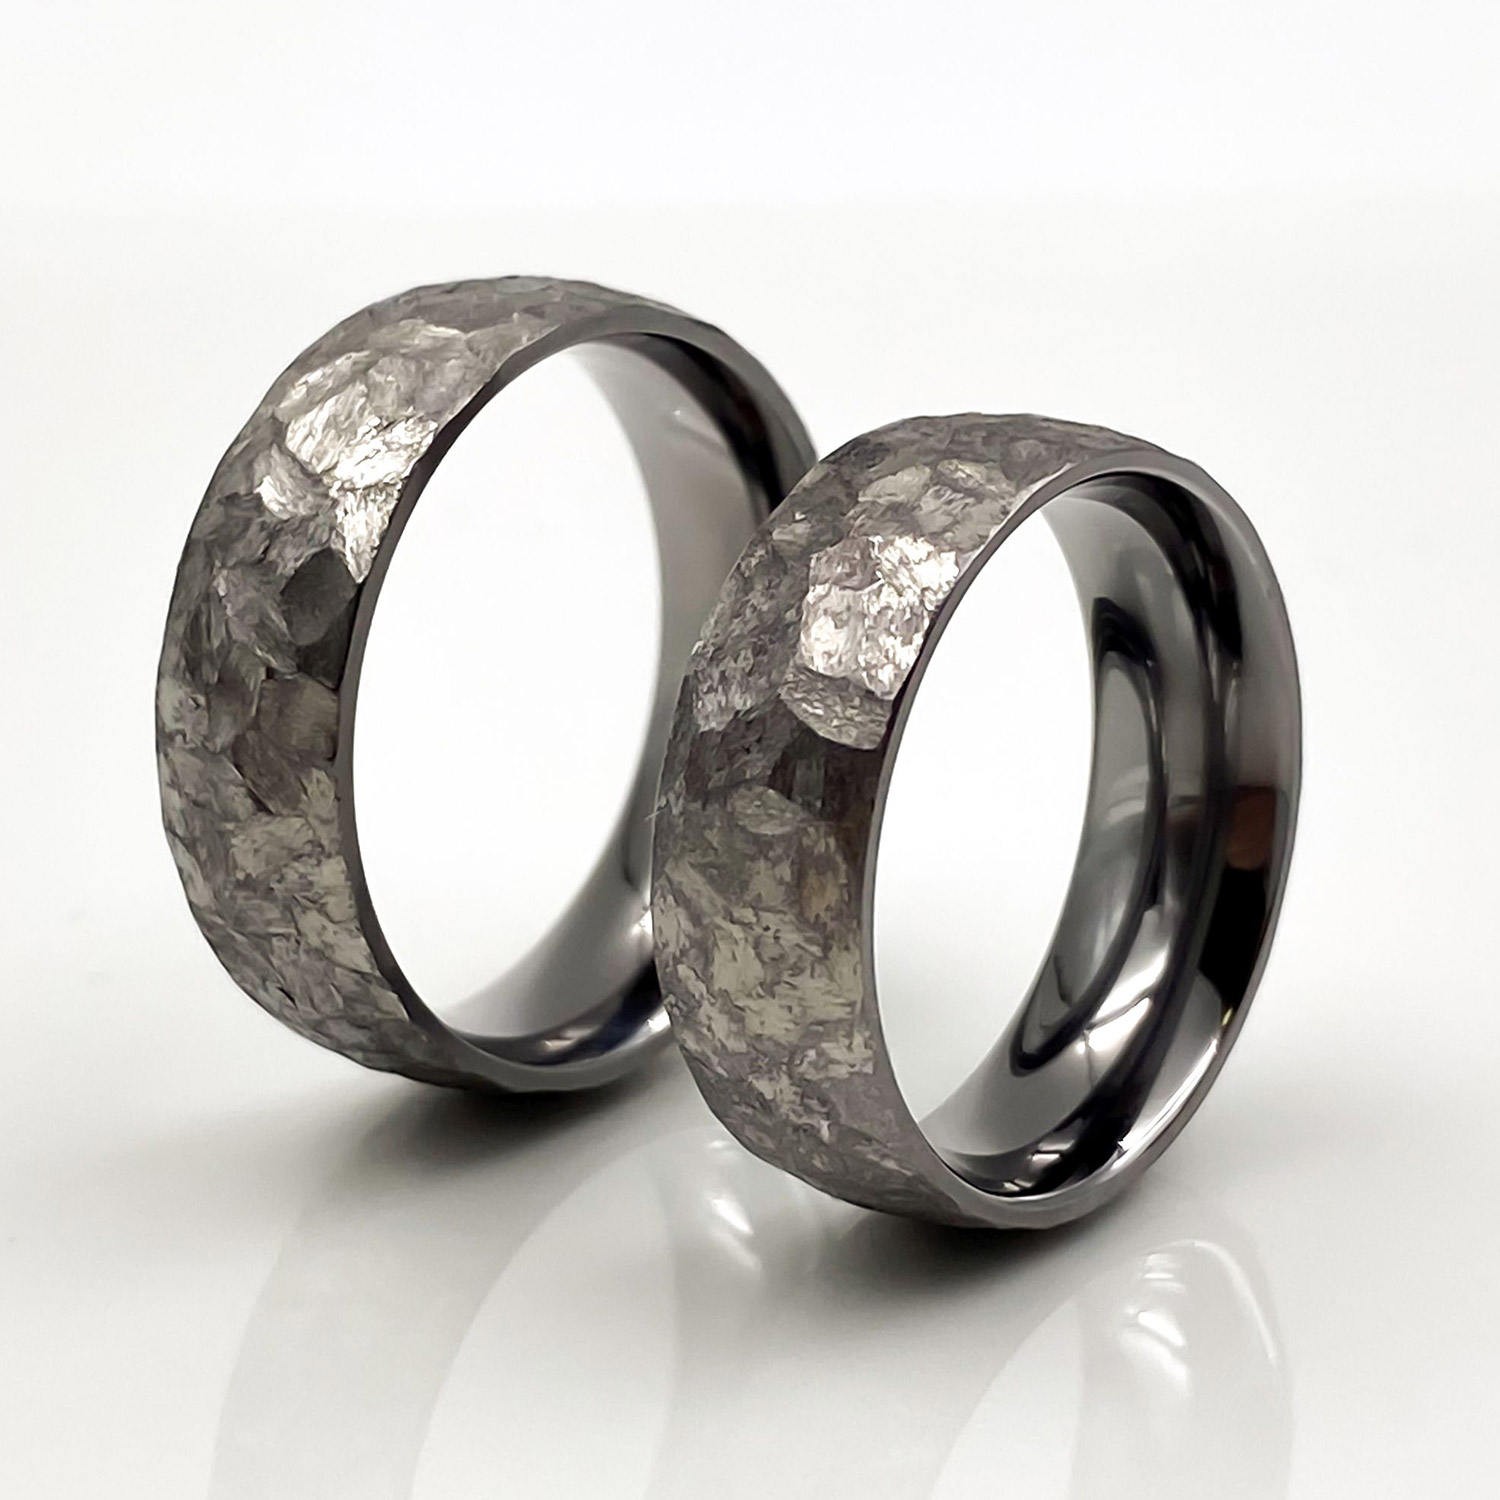 Hochzeitsringe aus Tantal | Ringpaar True Love Collection No:45